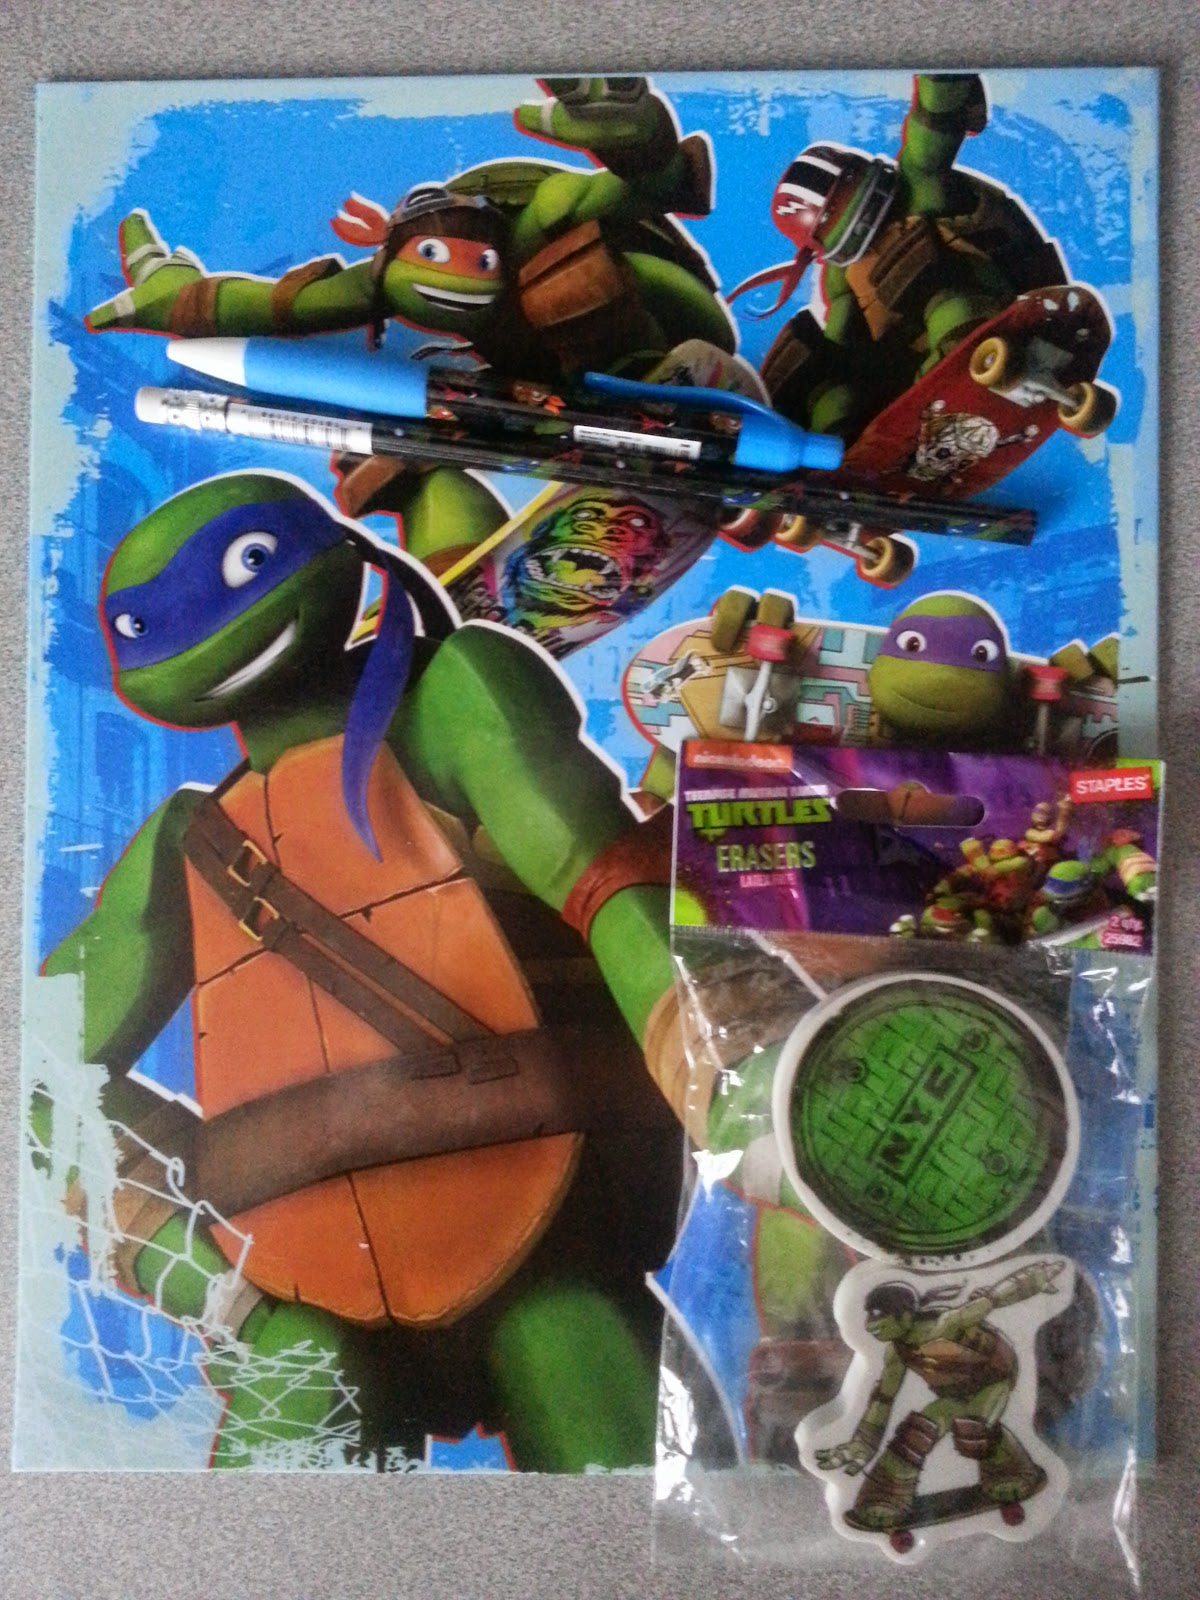 Teenage Mutant Ninja Turtles School Supplies